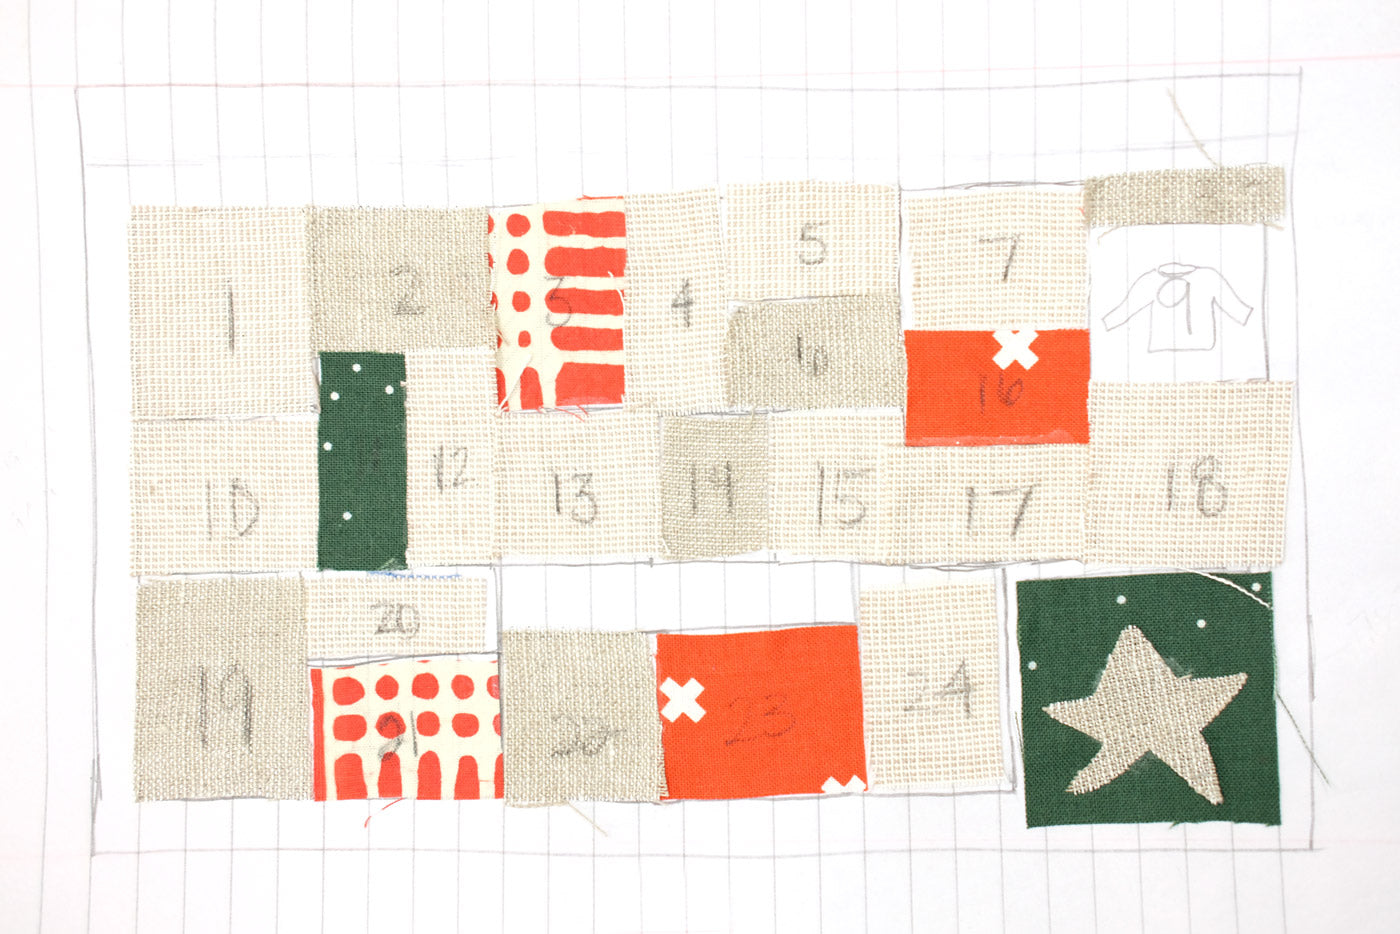 Color Mixing and Matching for the Fancy Advent Caendar